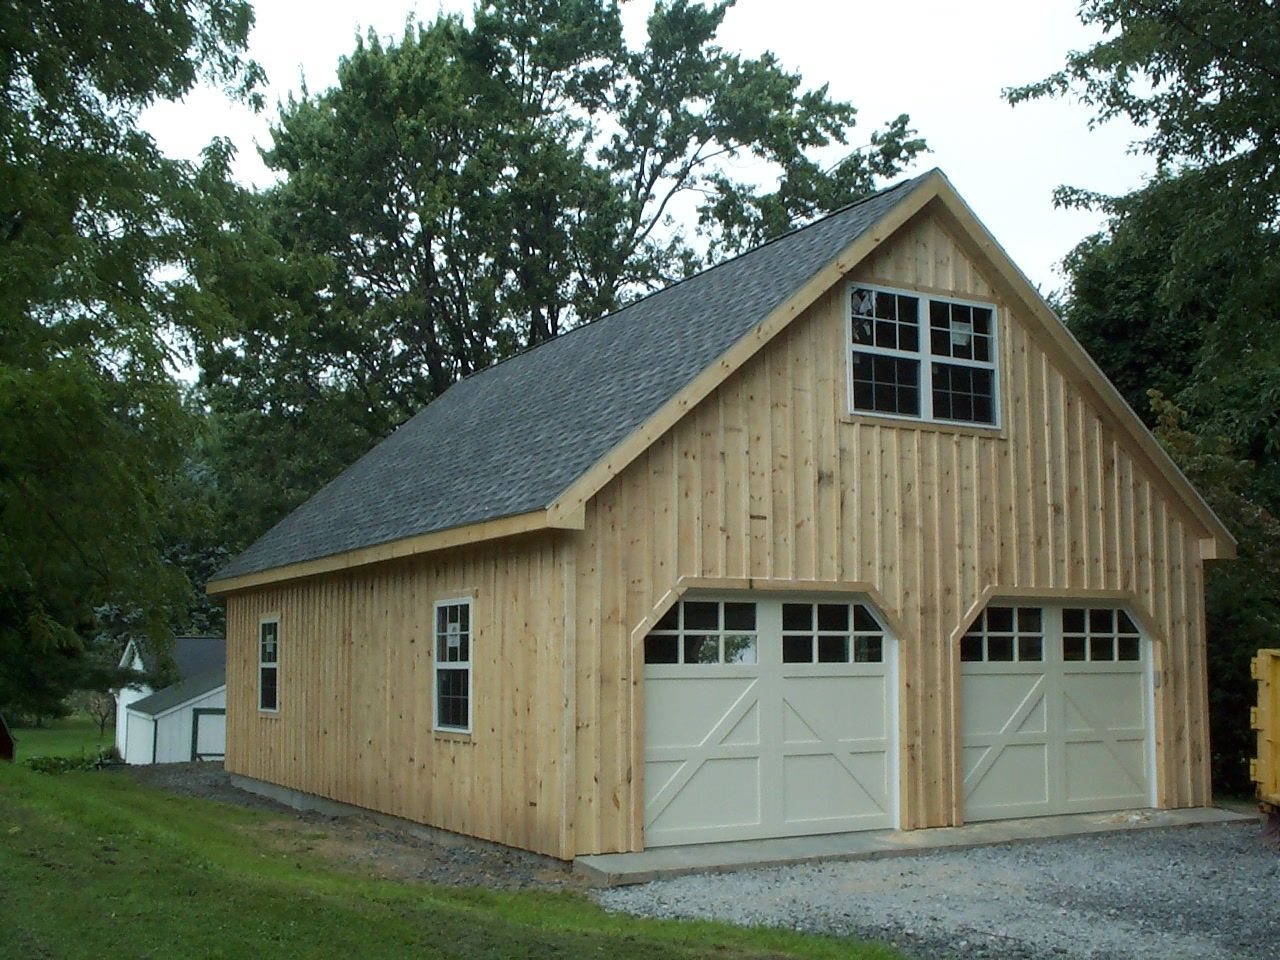 3 car garage plans with loft with cedar shake siding for Cedar shake home plans